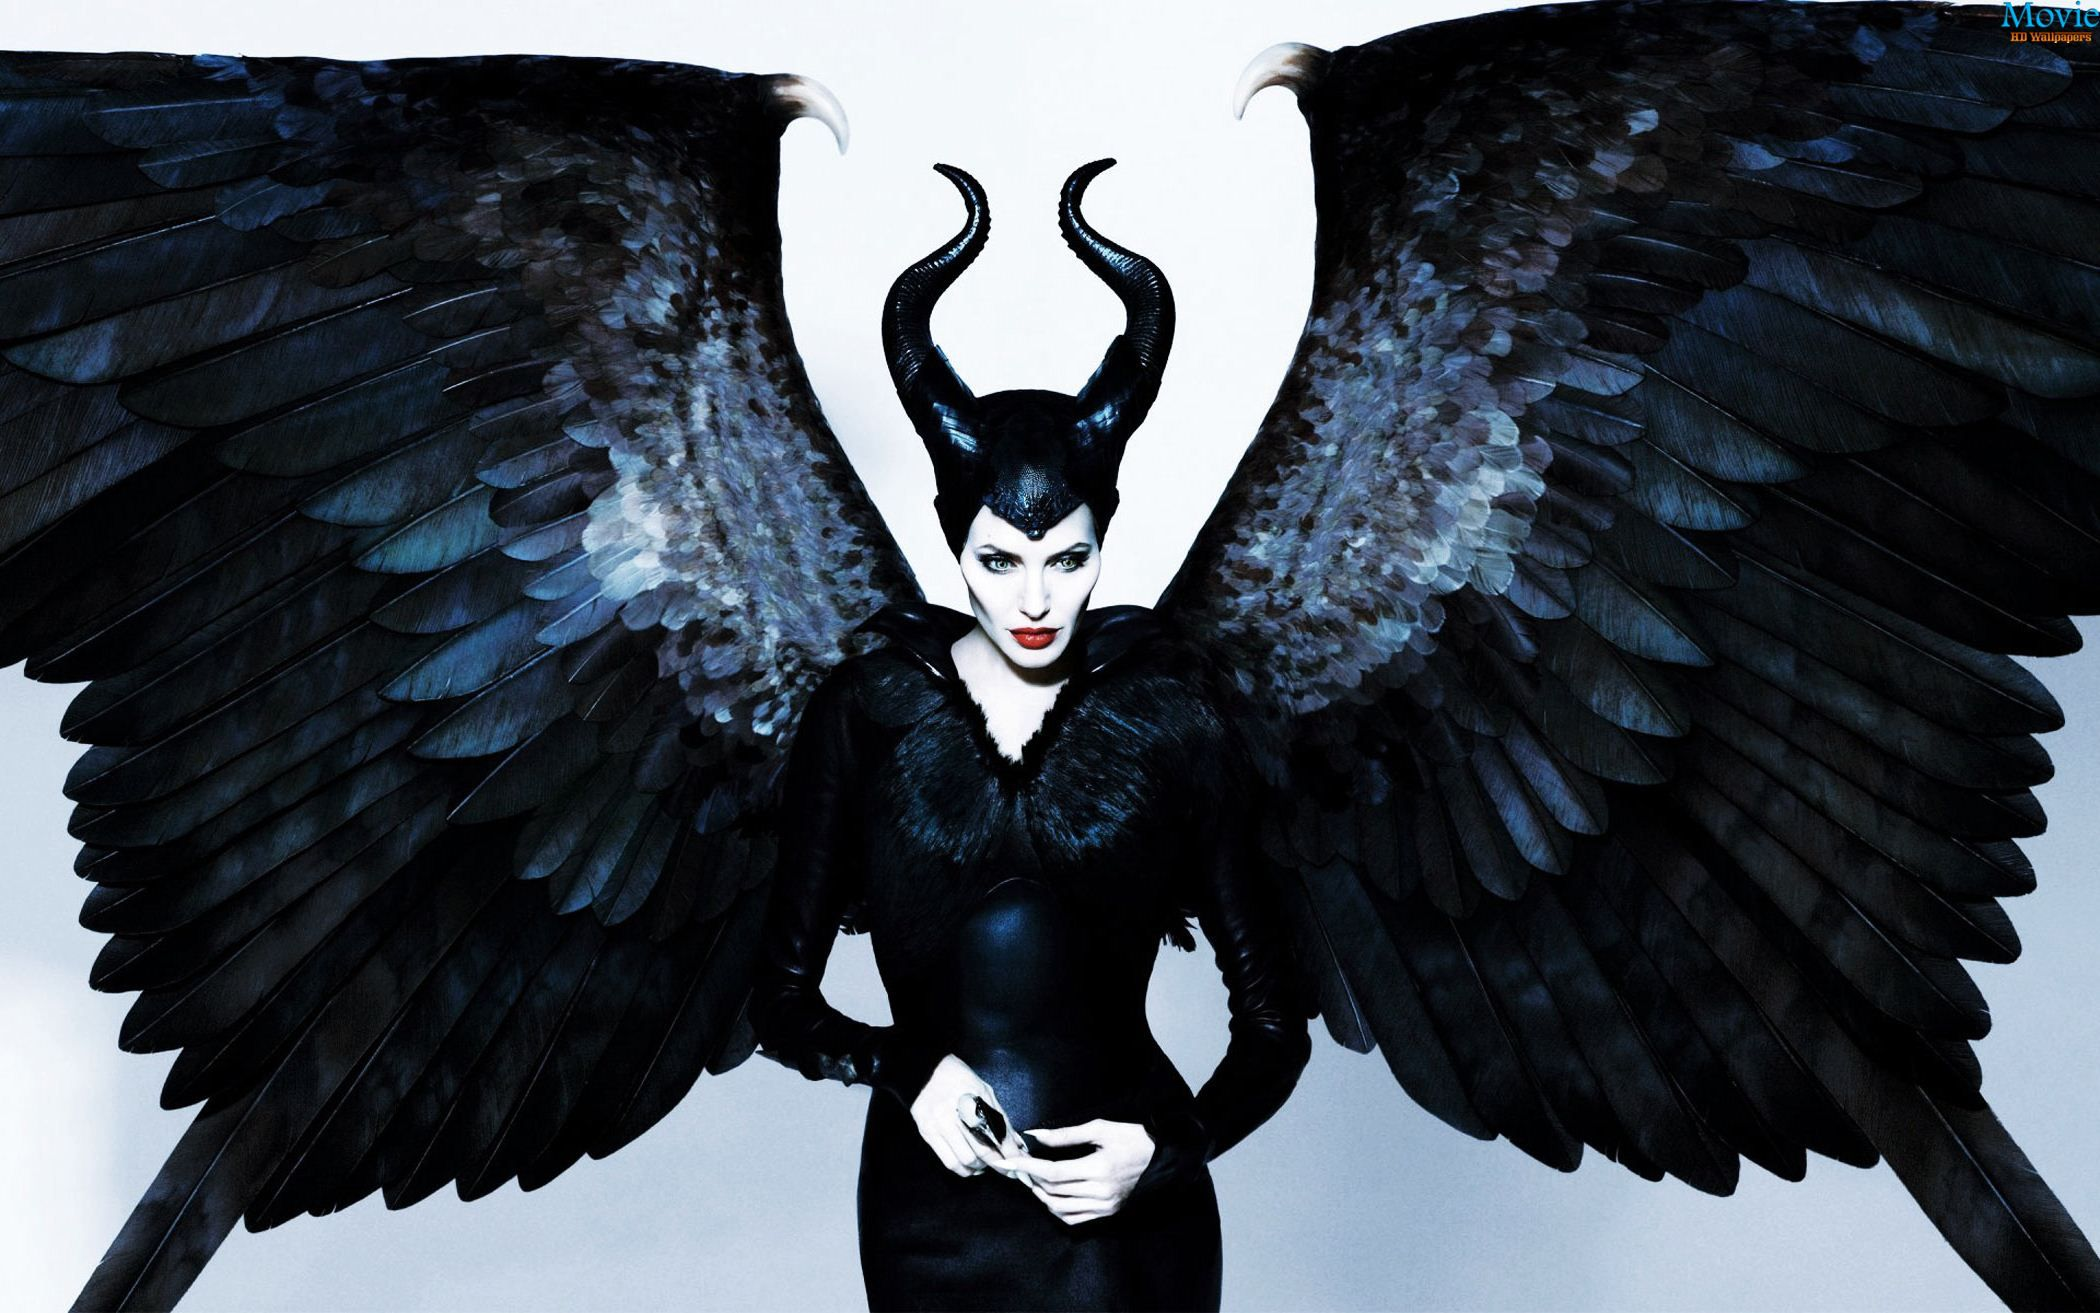 Maleficent Movie 2014 Hd Ipad Iphone Wallpapers: Movie HD Wallpapers